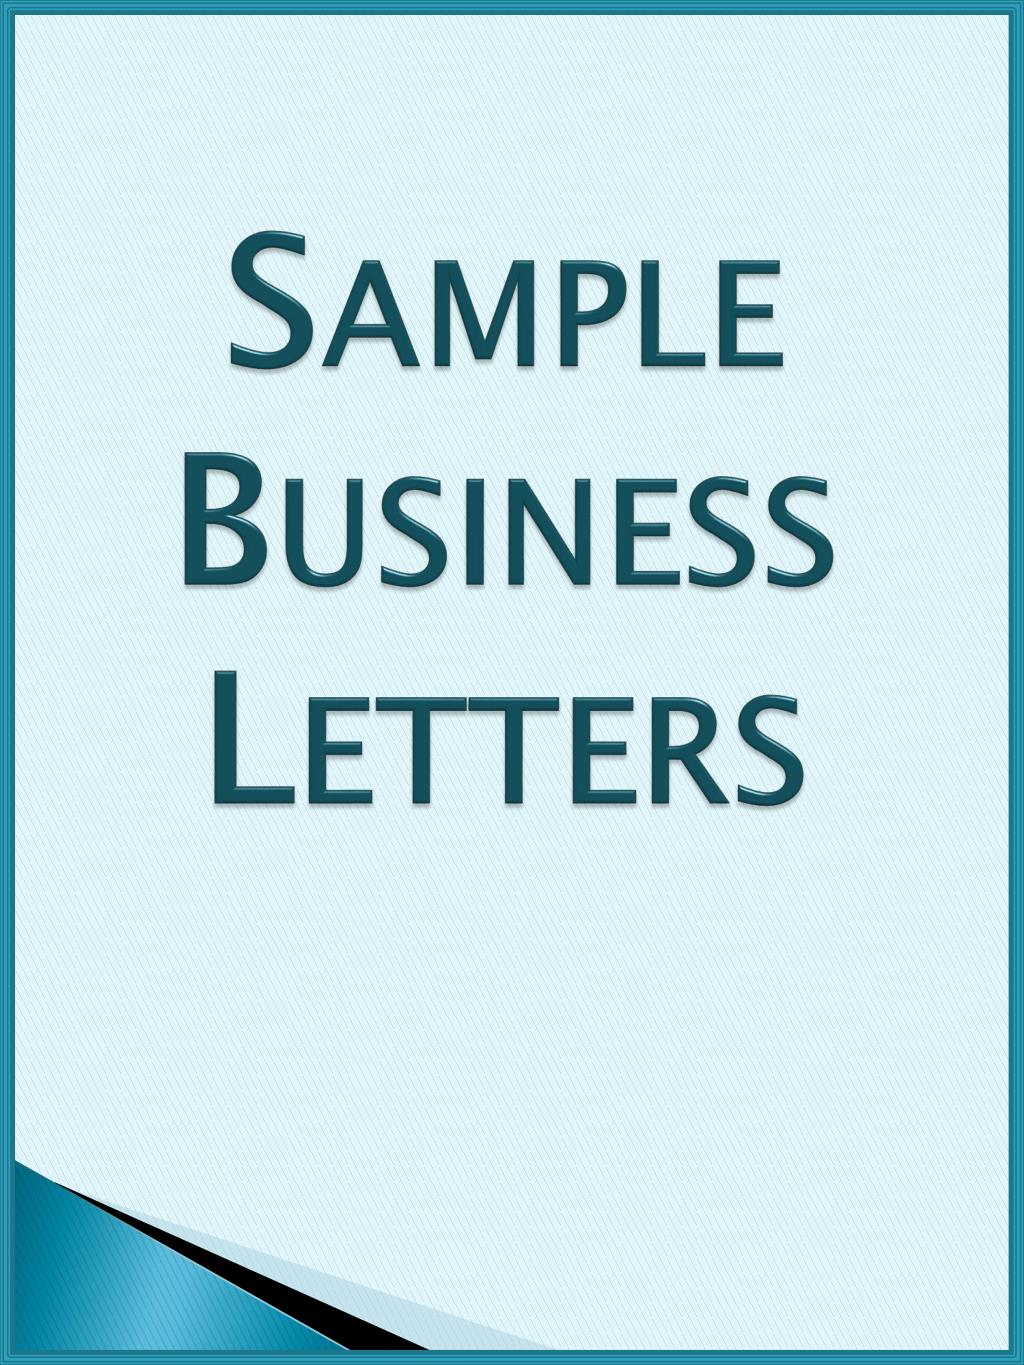 ppt sample business letters powerpoint presentation id 1654753